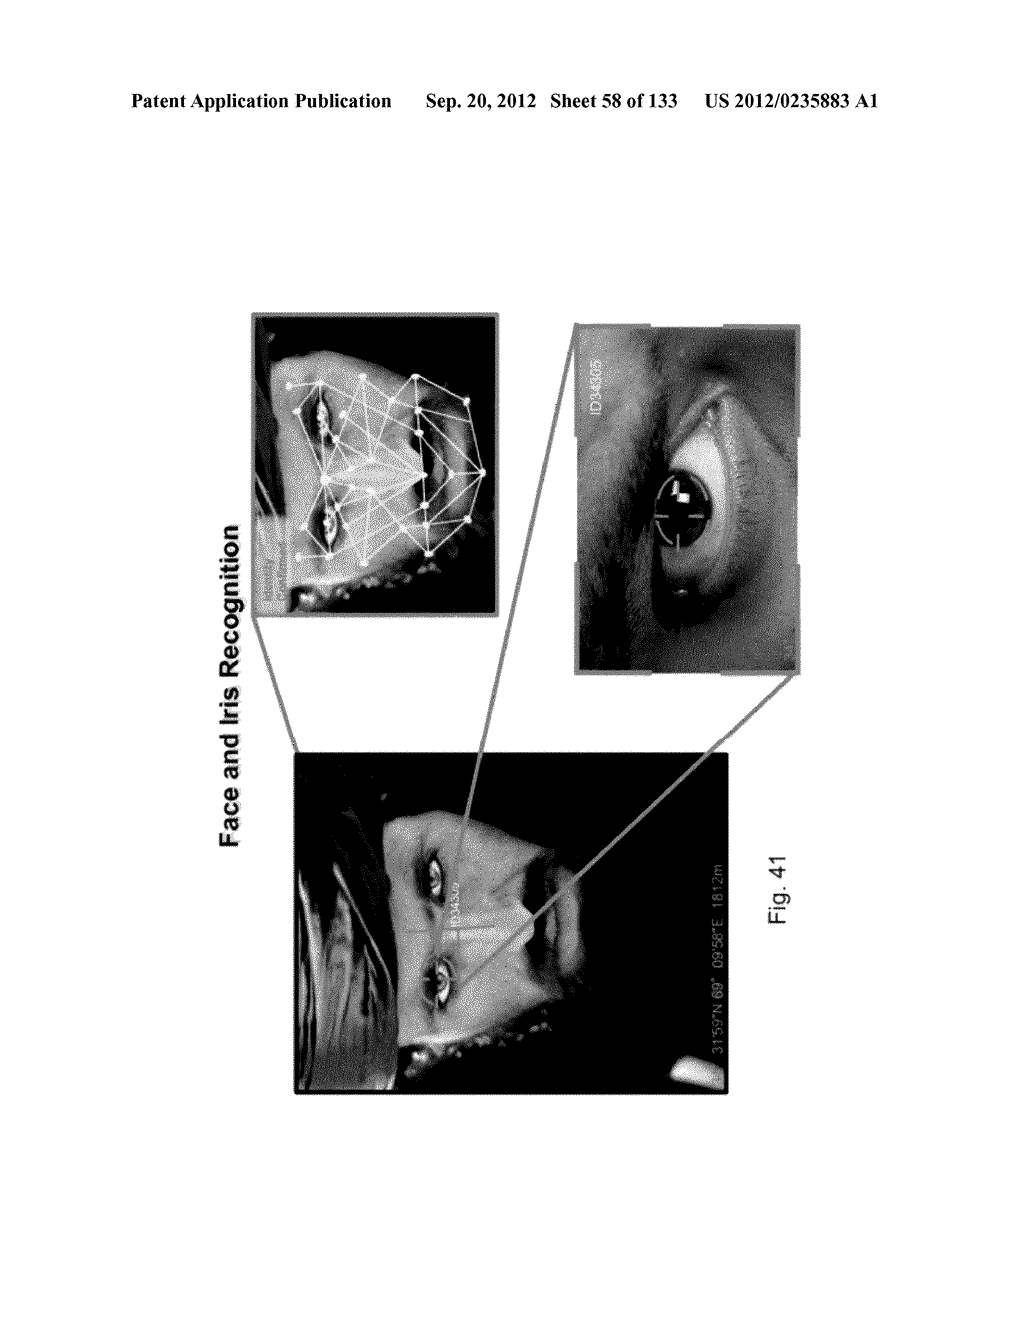 SEE-THROUGH NEAR-EYE DISPLAY GLASSES WITH A LIGHT TRANSMISSIVE WEDGE     SHAPED ILLUMINATION SYSTEM - diagram, schematic, and image 59